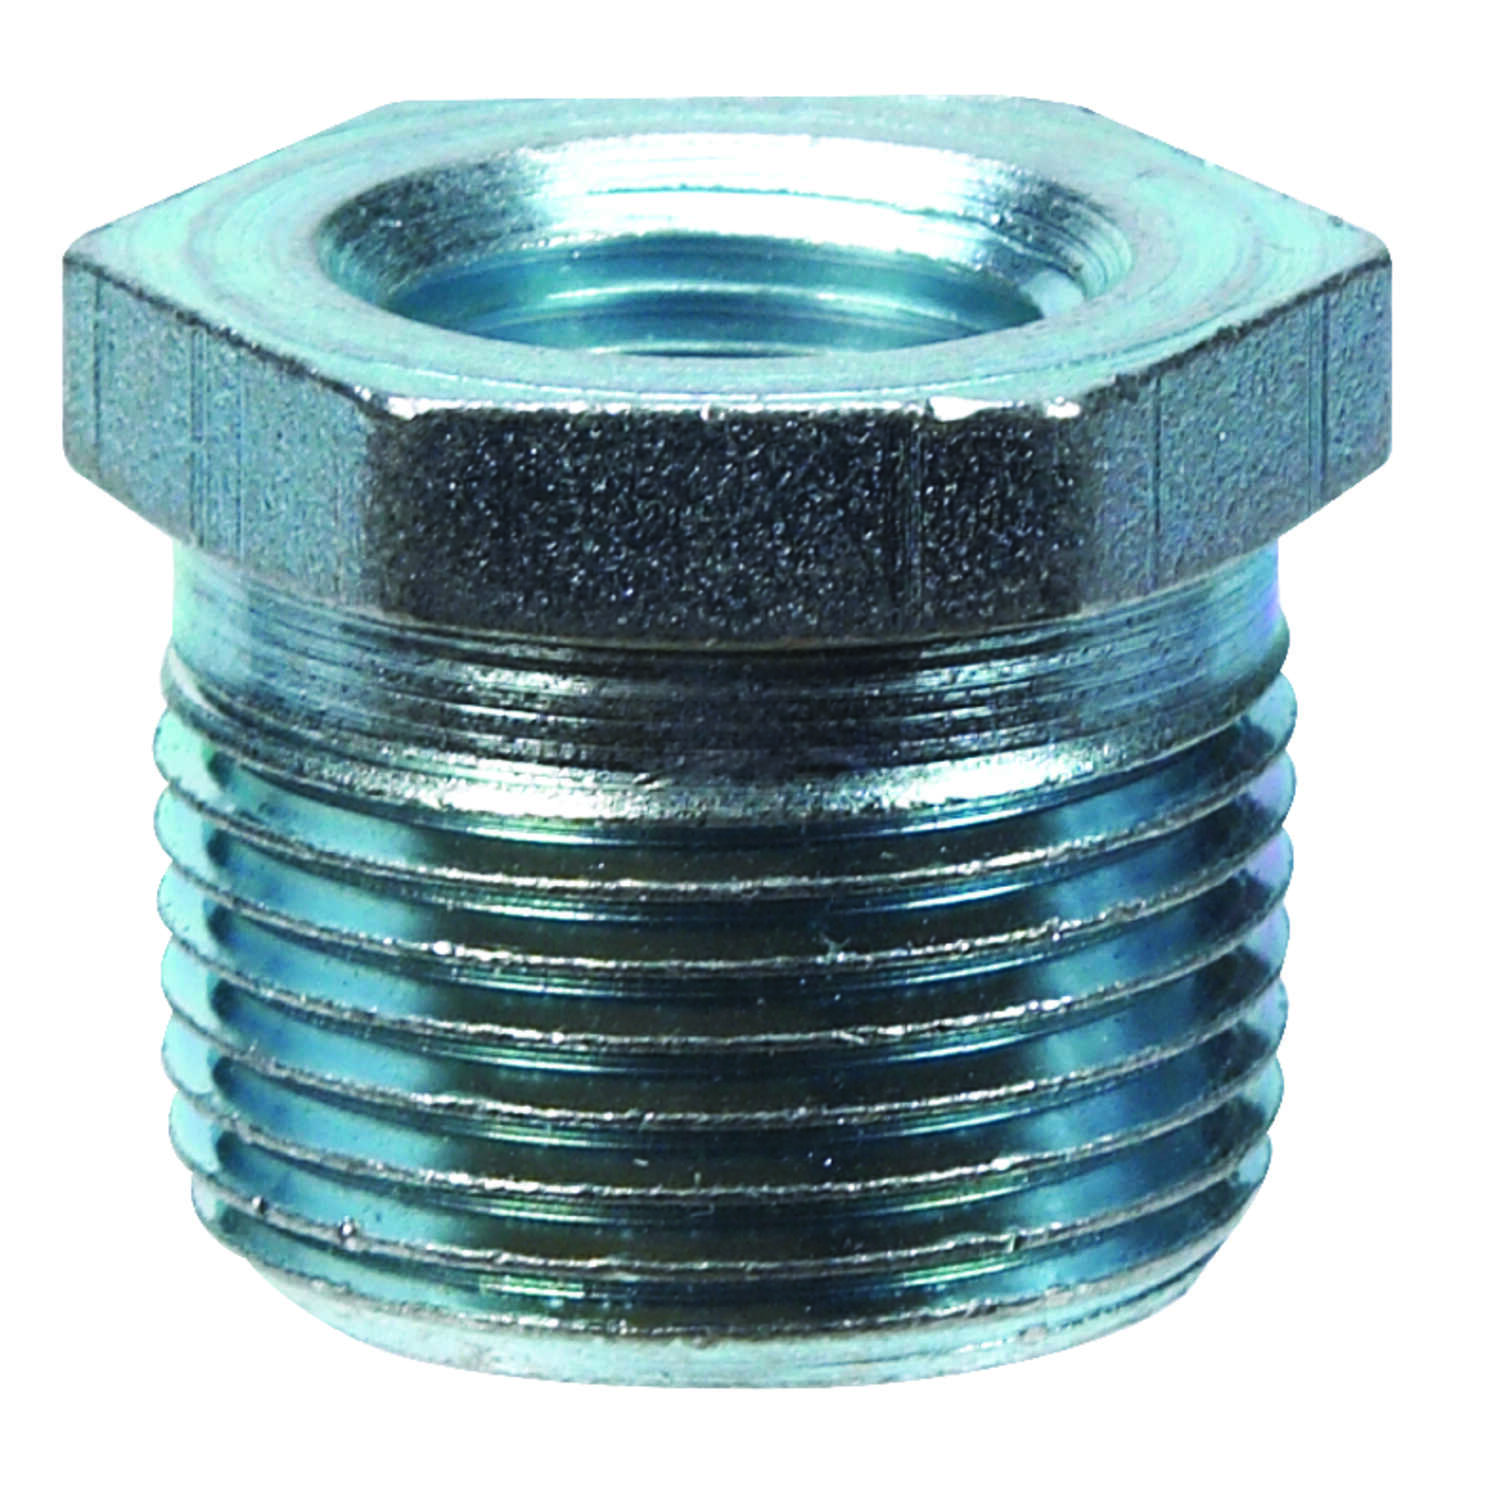 Billco  1/2 in. MPT  1/8 in. Dia. MPT  Galvanized Steel  Hex Bushing